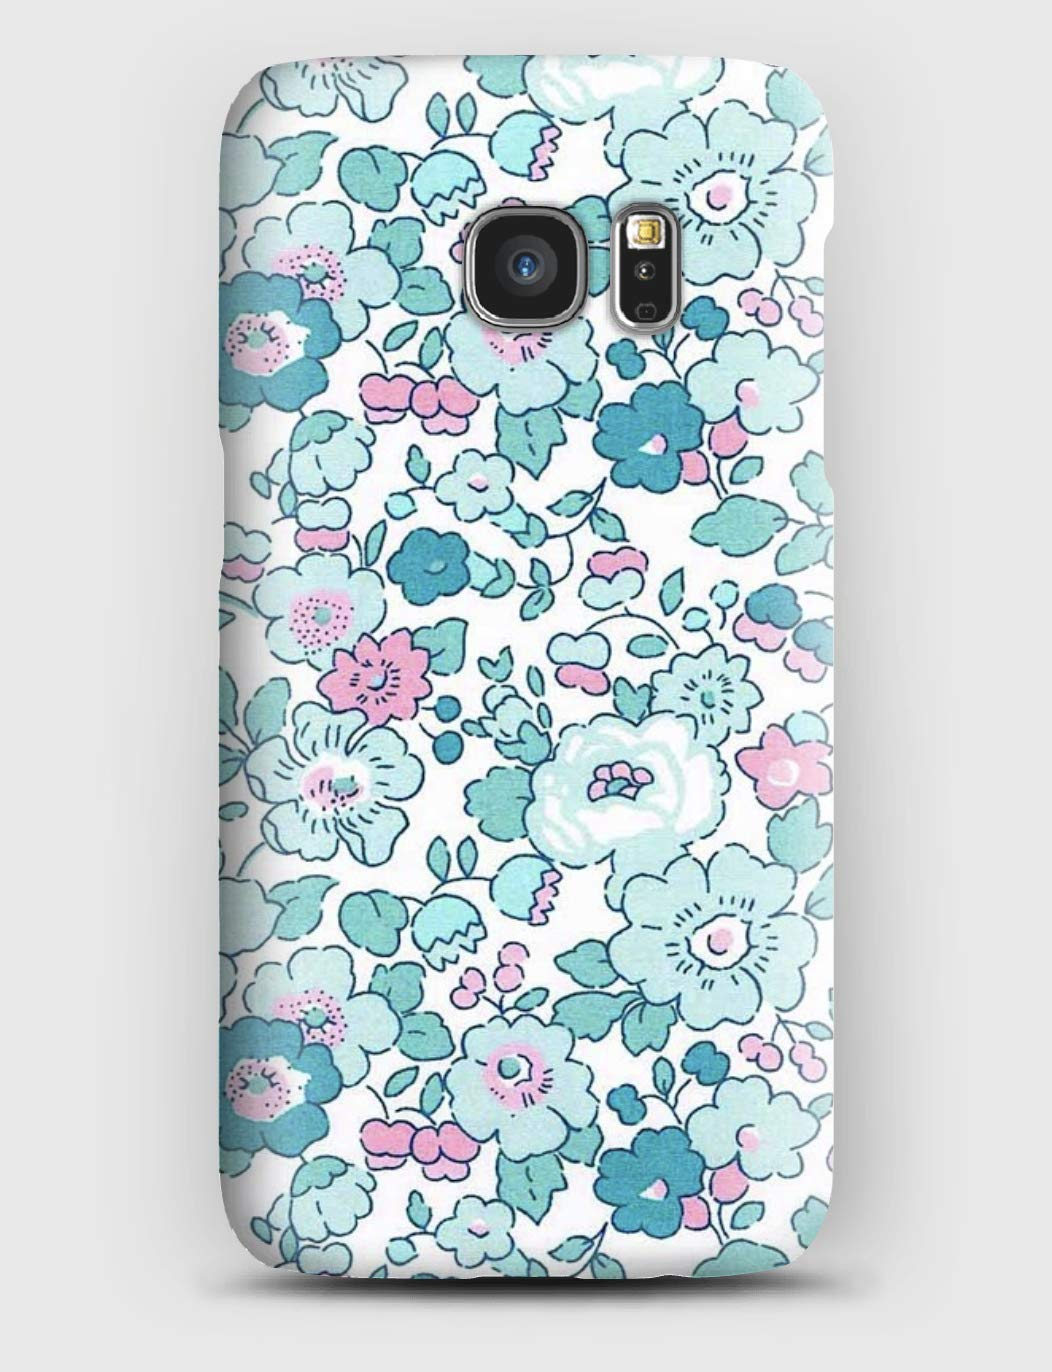 Liberty Betsy Y, coque pour Samsung S5, S6, S7, S8, S9, A3, A5, A7,A8, J3, J5, Note 4, 5, 8,9,Grand prime,